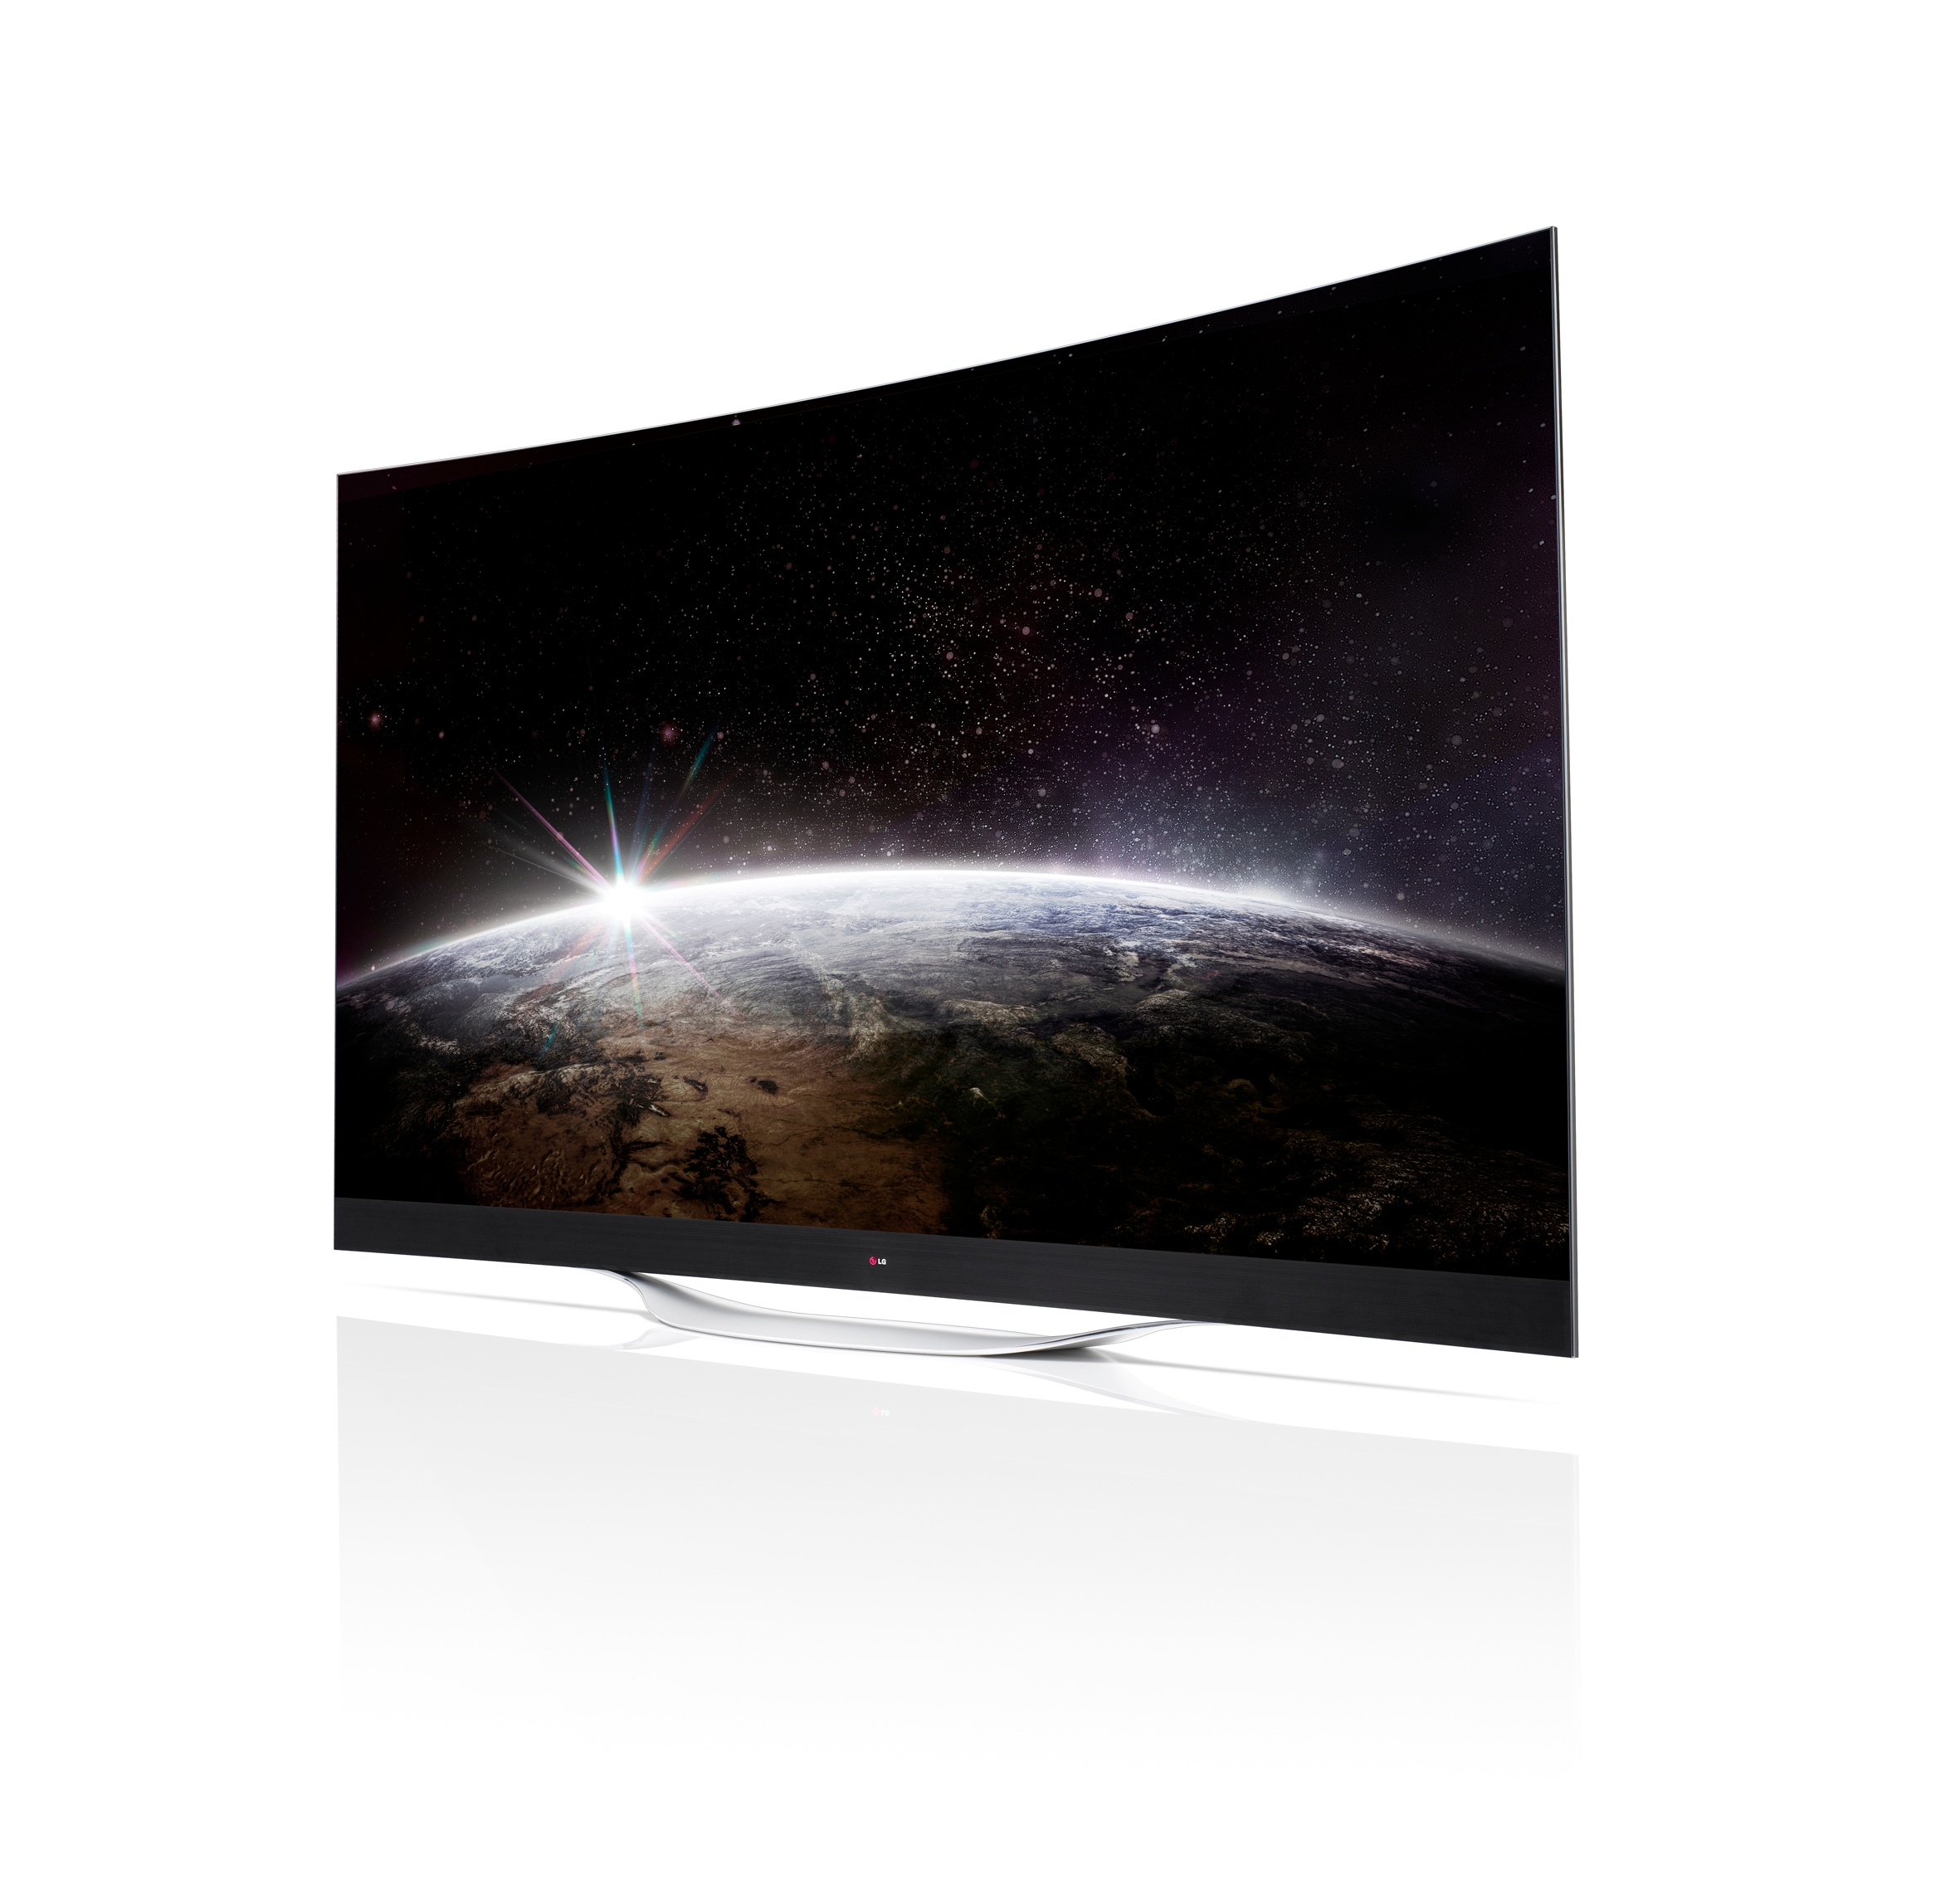 lg to showcase oled tv lineup at ces 2014. Black Bedroom Furniture Sets. Home Design Ideas